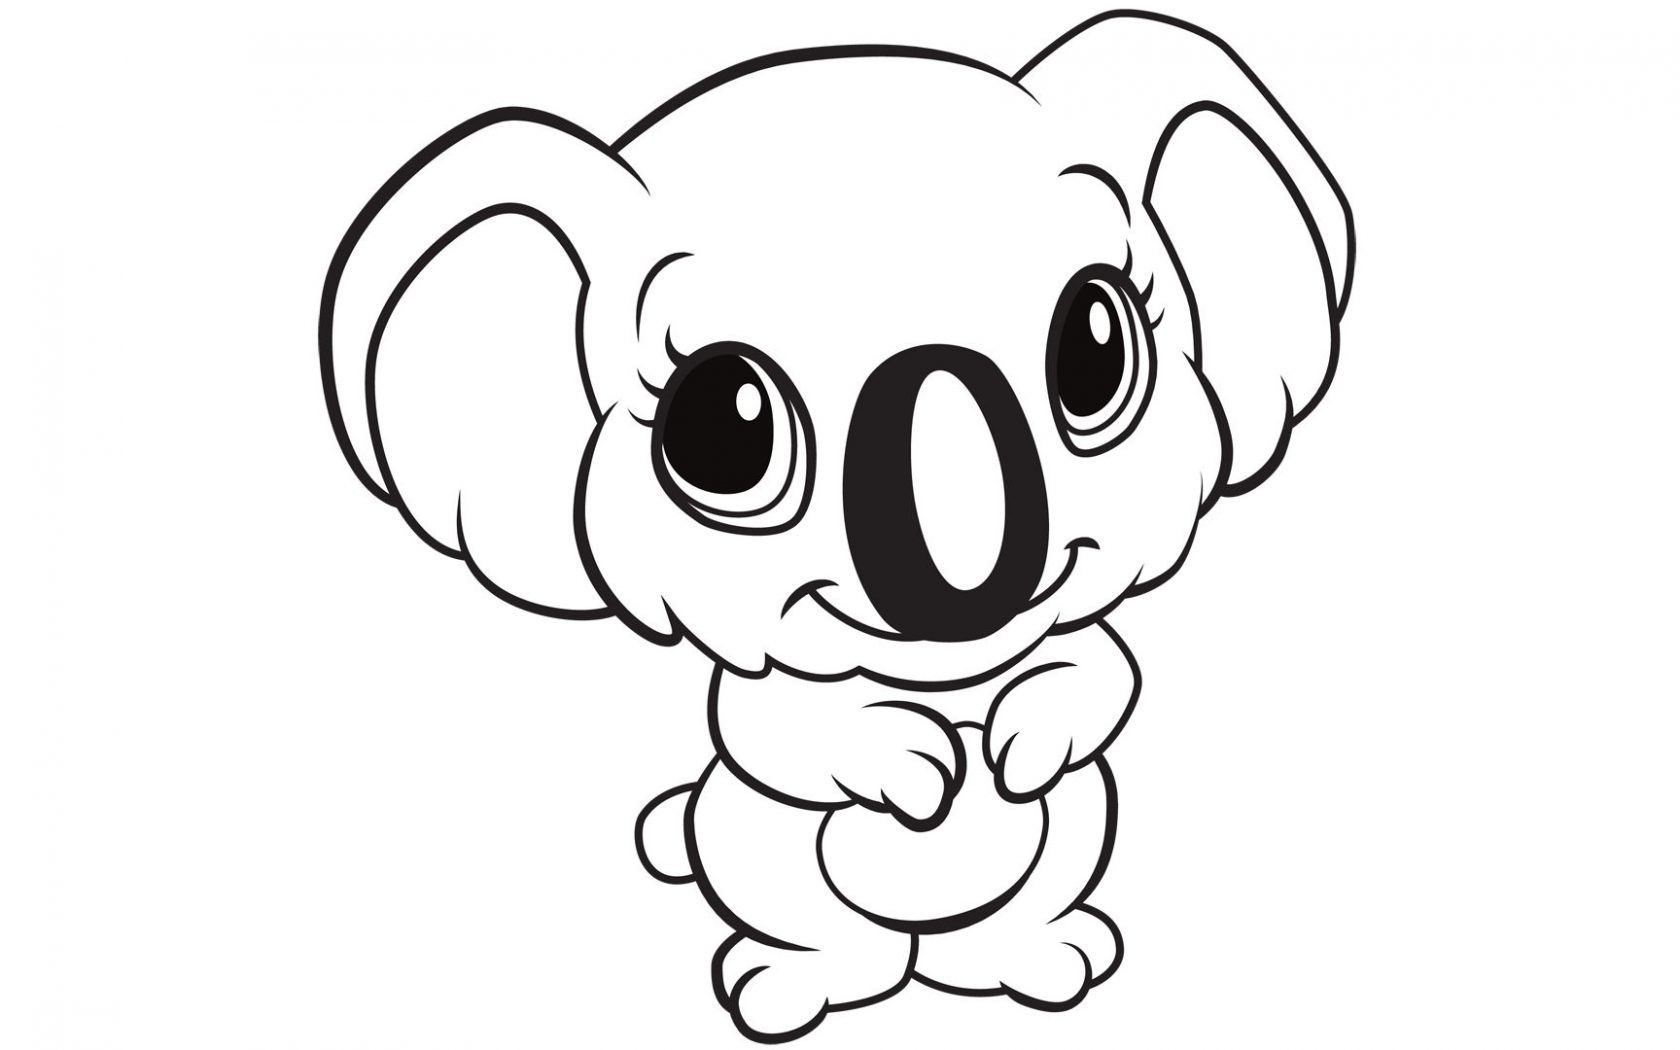 Animal Coloring Pages Best Coloring Pages For Kids In 2020 Animal Coloring Books Zoo Animal Coloring Pages Cartoon Coloring Pages